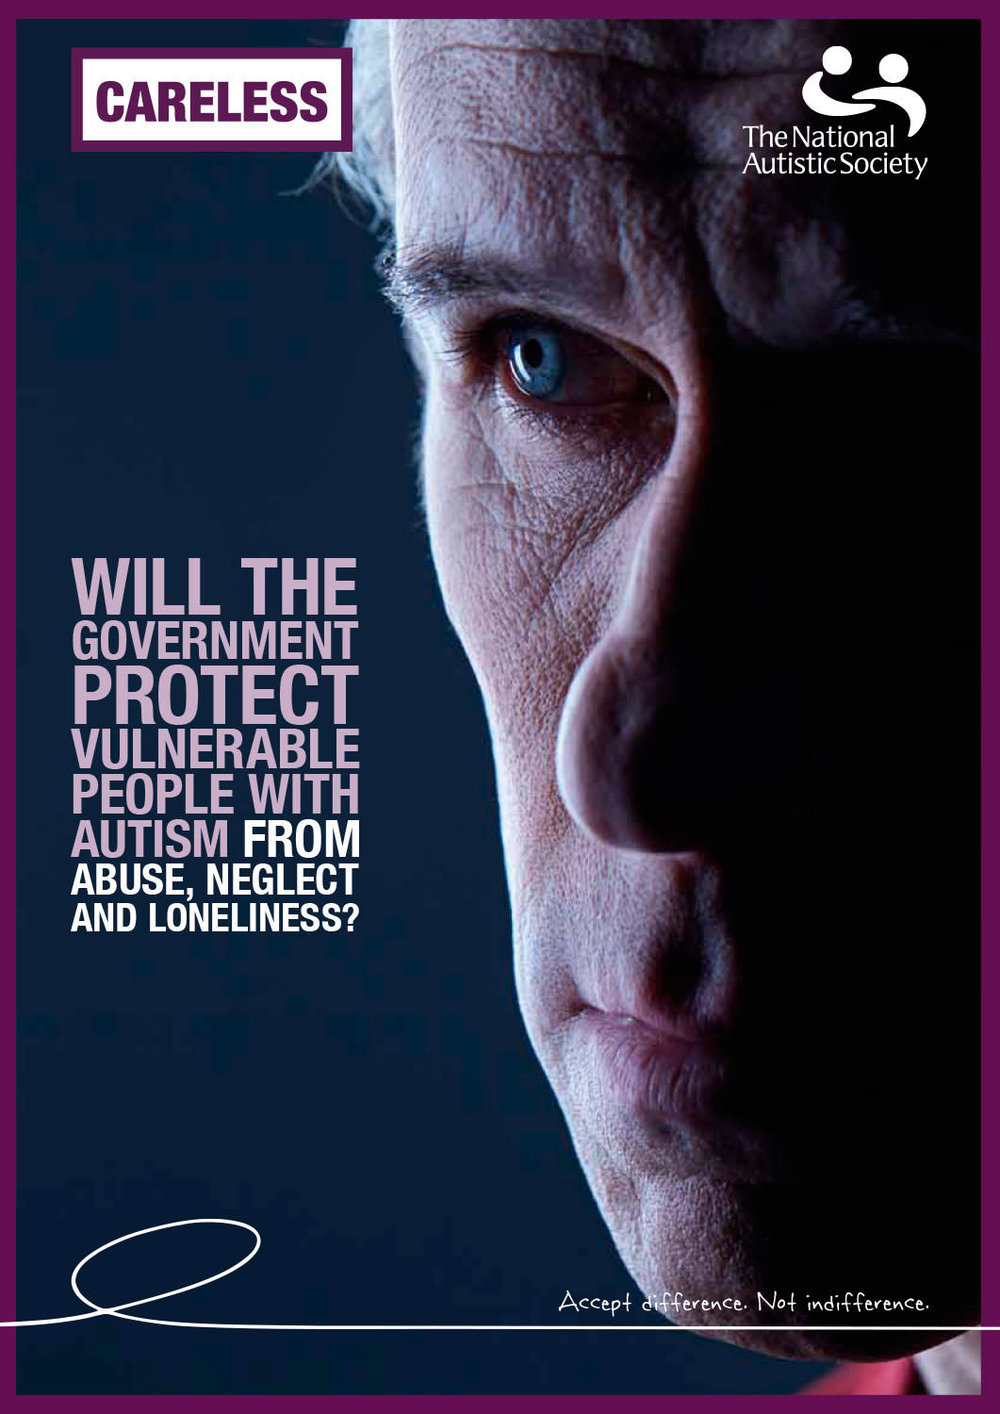 National-Autistic-Society-Careless-campaign-report-(1)-1.jpg